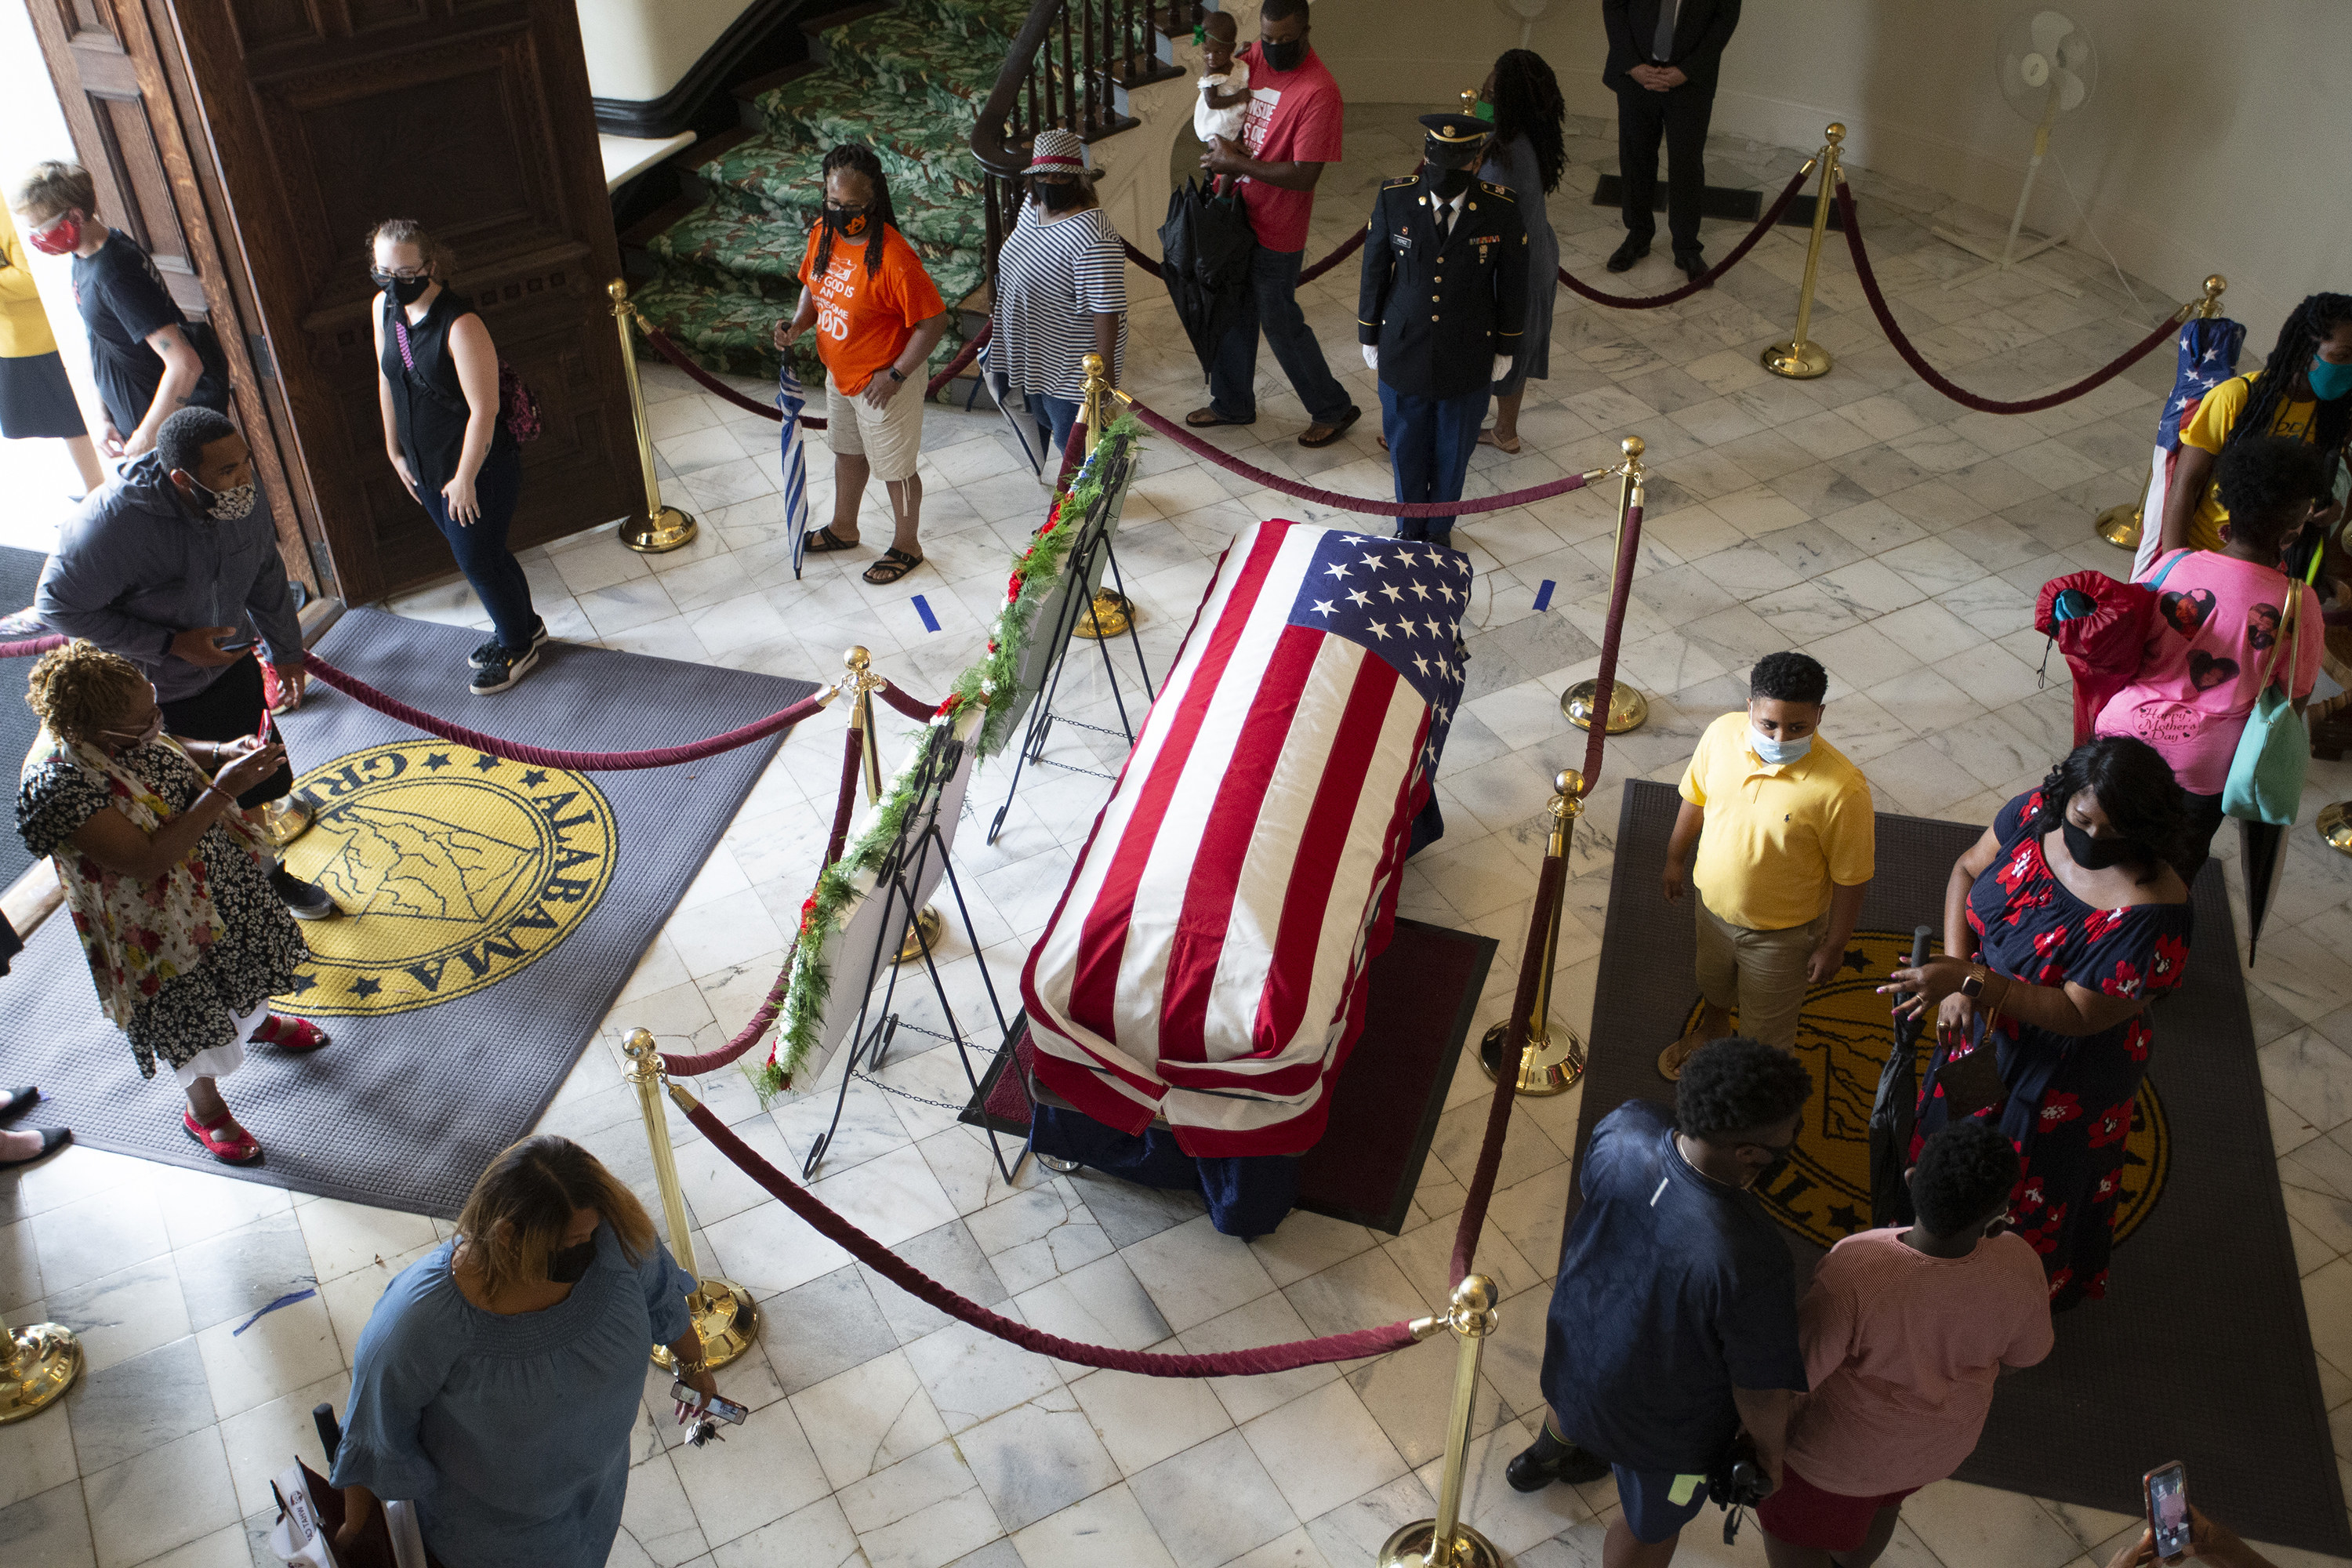 Visitors wearing masks walk around a casket, which is covered by a US flag and cordoned off by velvet rope barriers